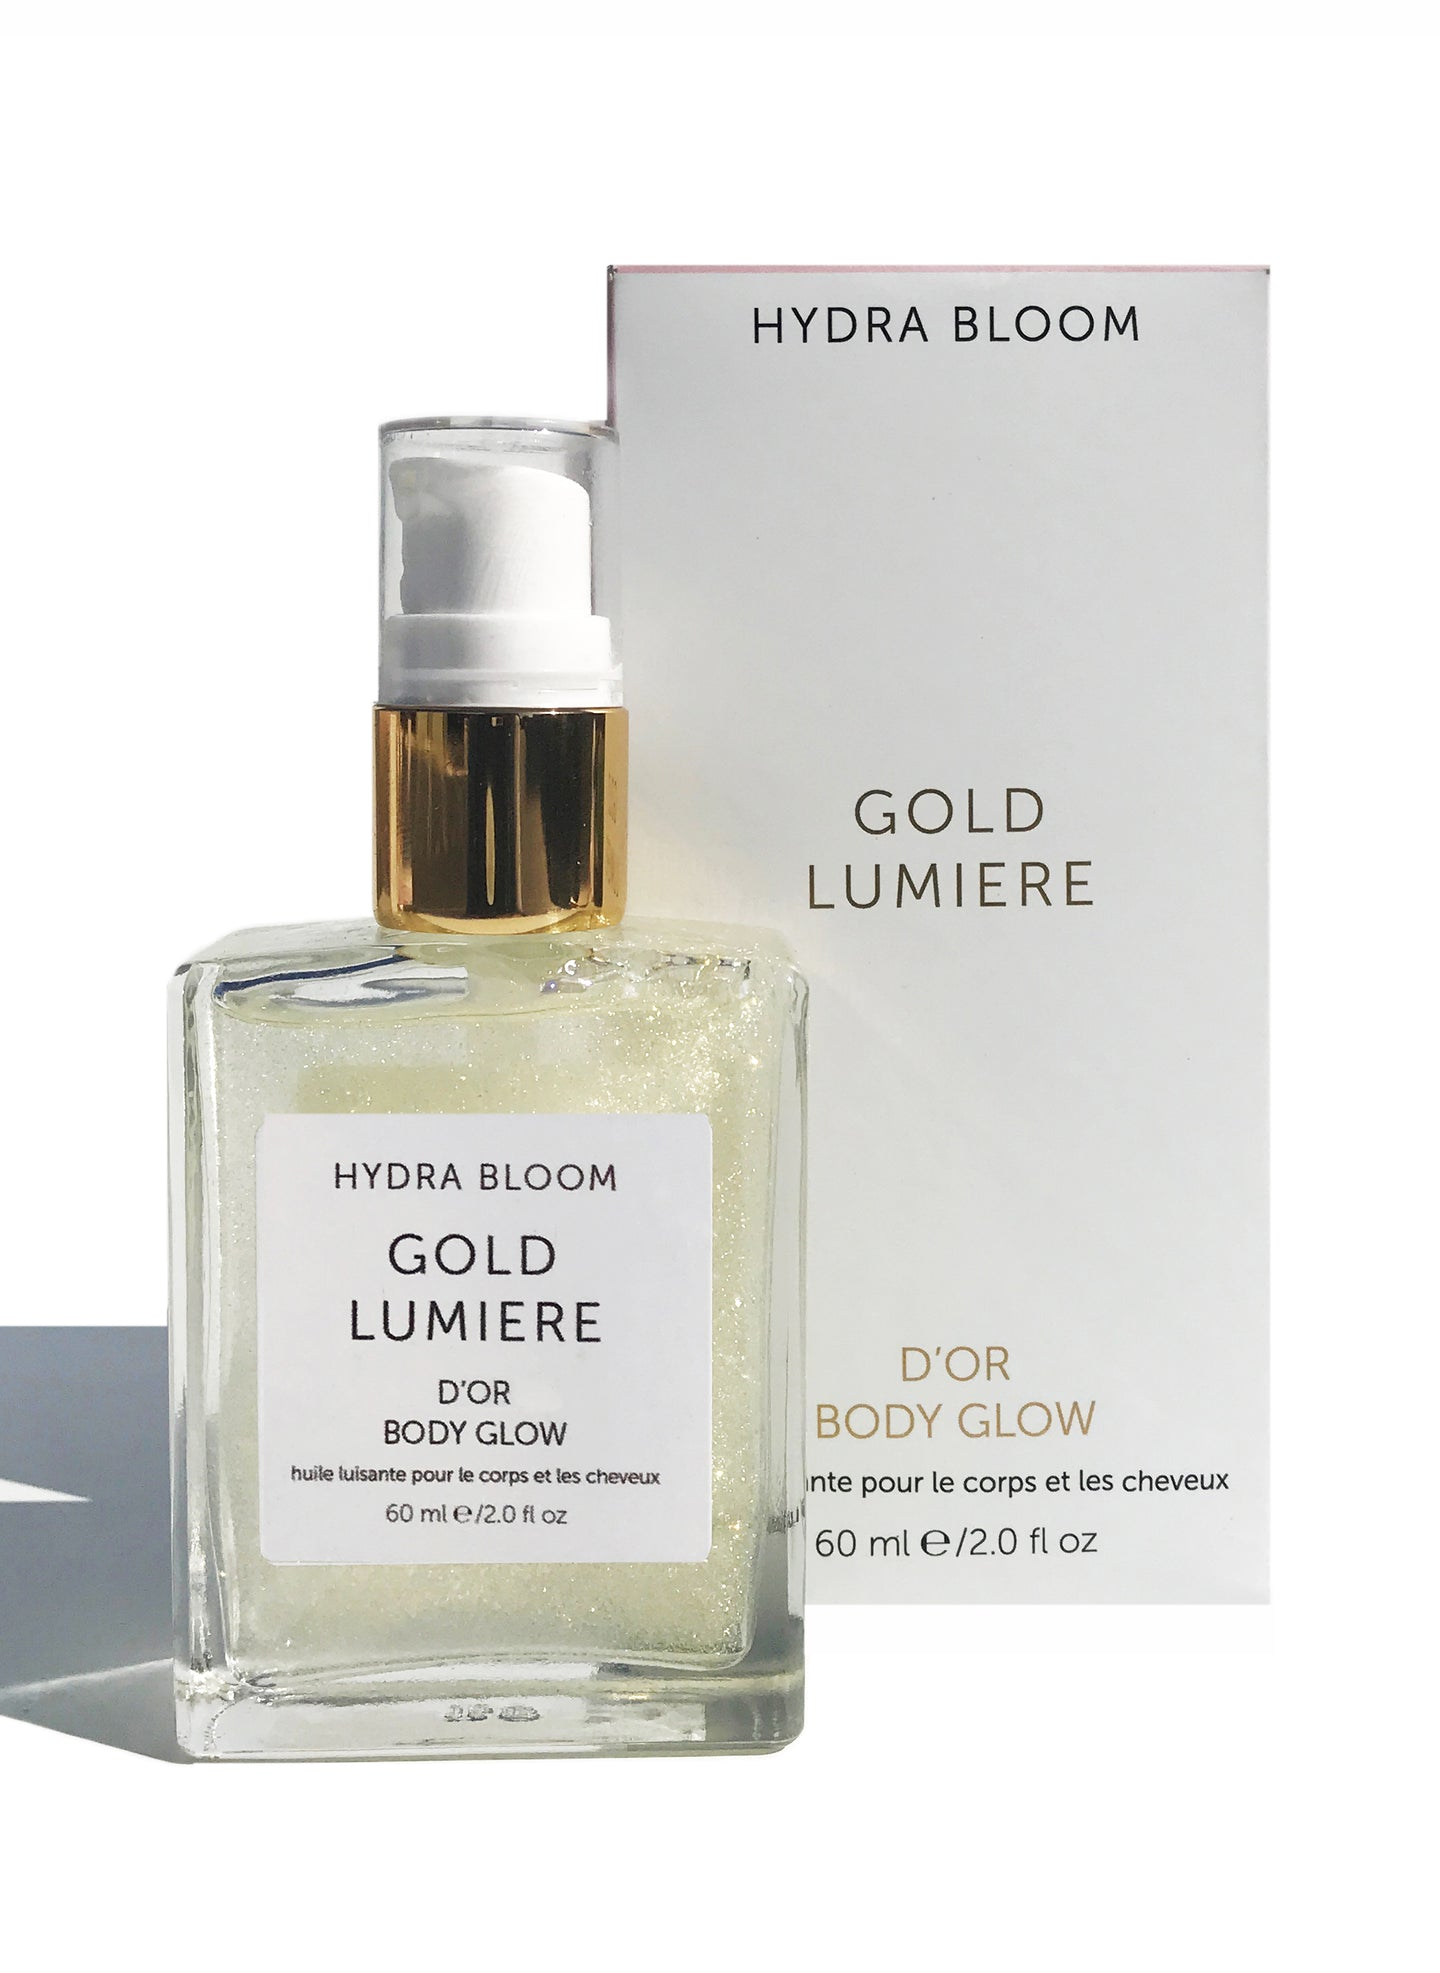 Hydra Bloom Gold Shimmer Oil - 60ml | Lucy B's